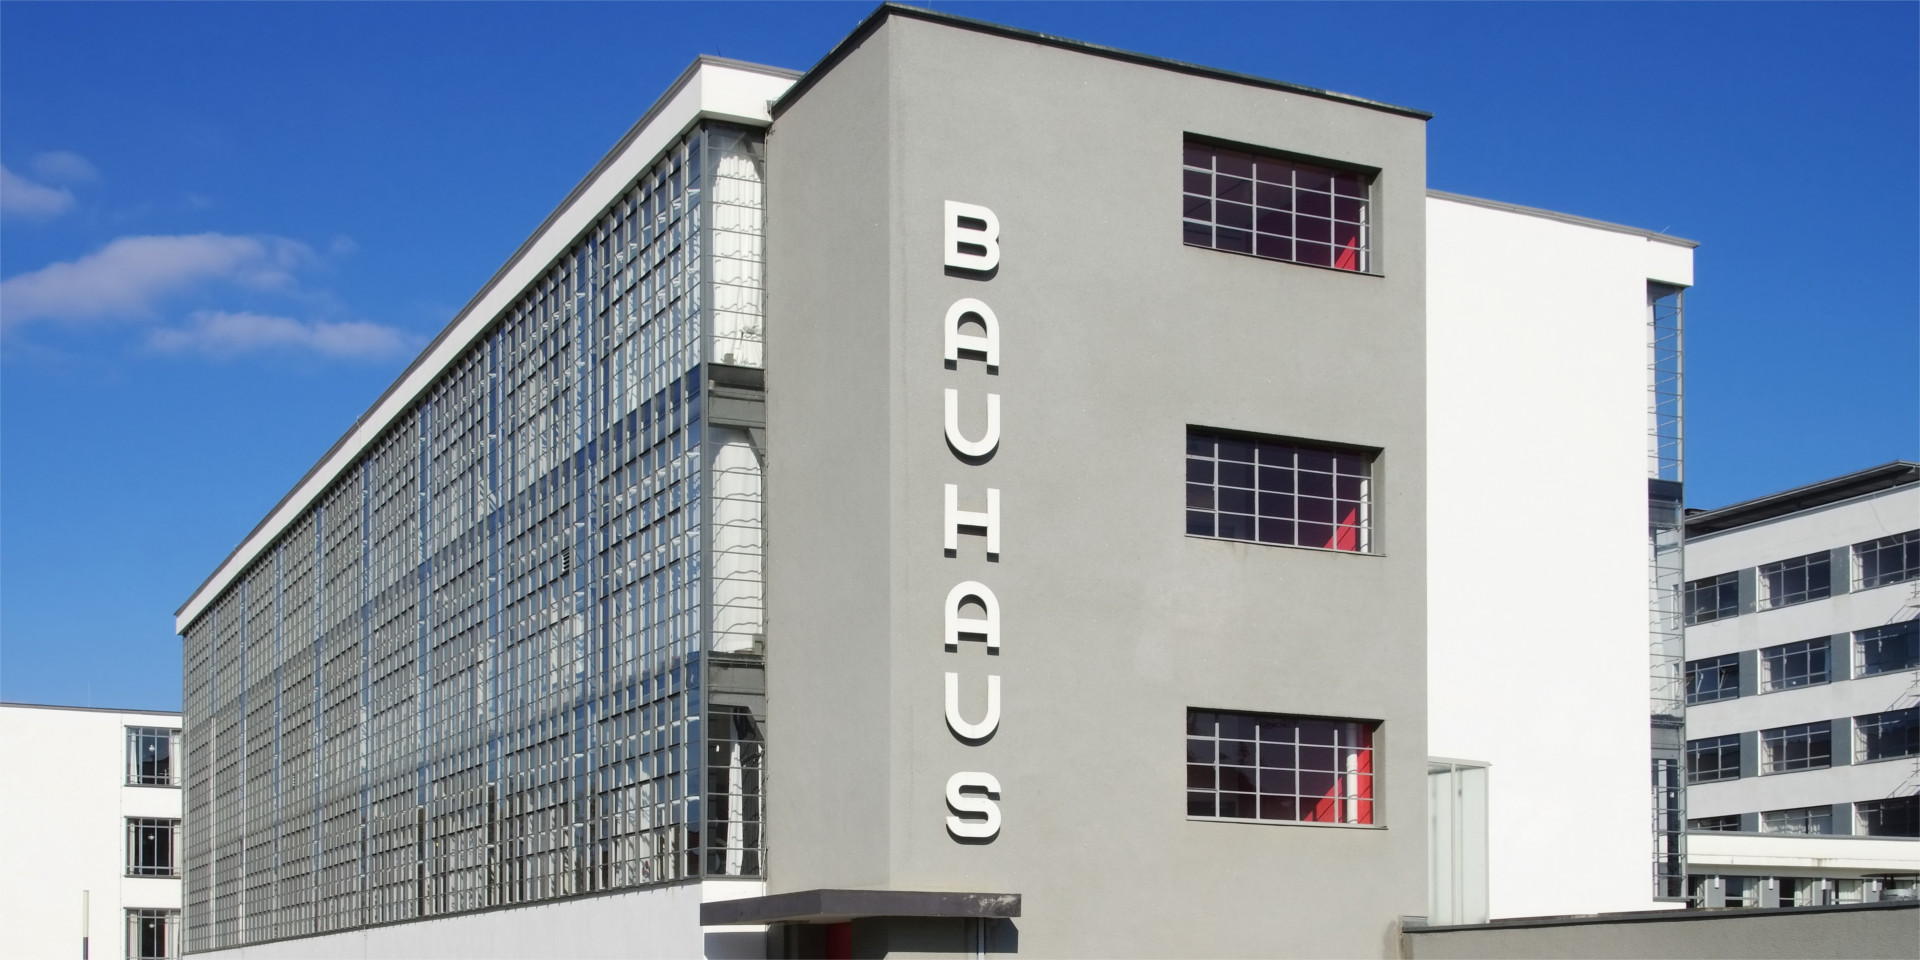 Bauhaus building in Dessau